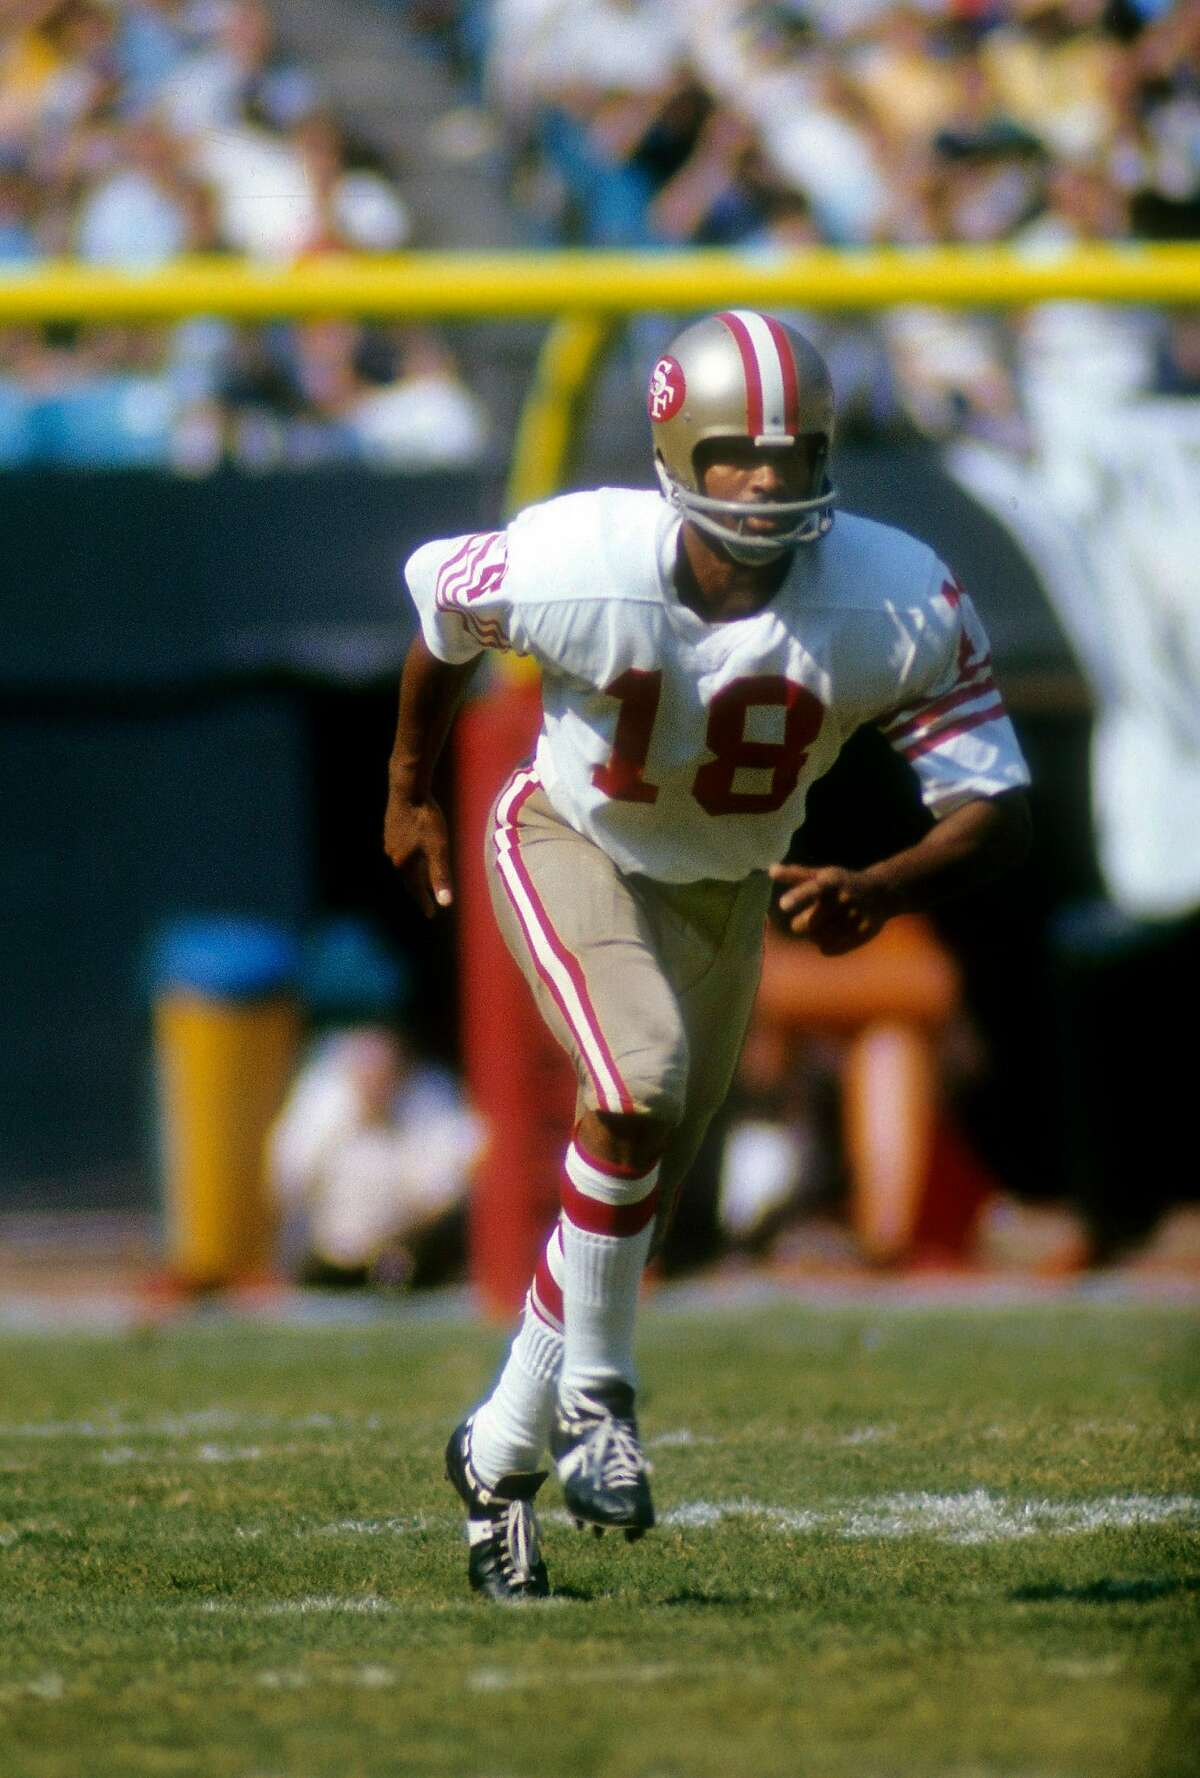 CIRCA 1970: Wide Receiver Gene Washington #18 of the San Francisco 49ers runs a pass rout during an NFL football game circa 1970. Washington played for the 49ers from 1969-76. ~~